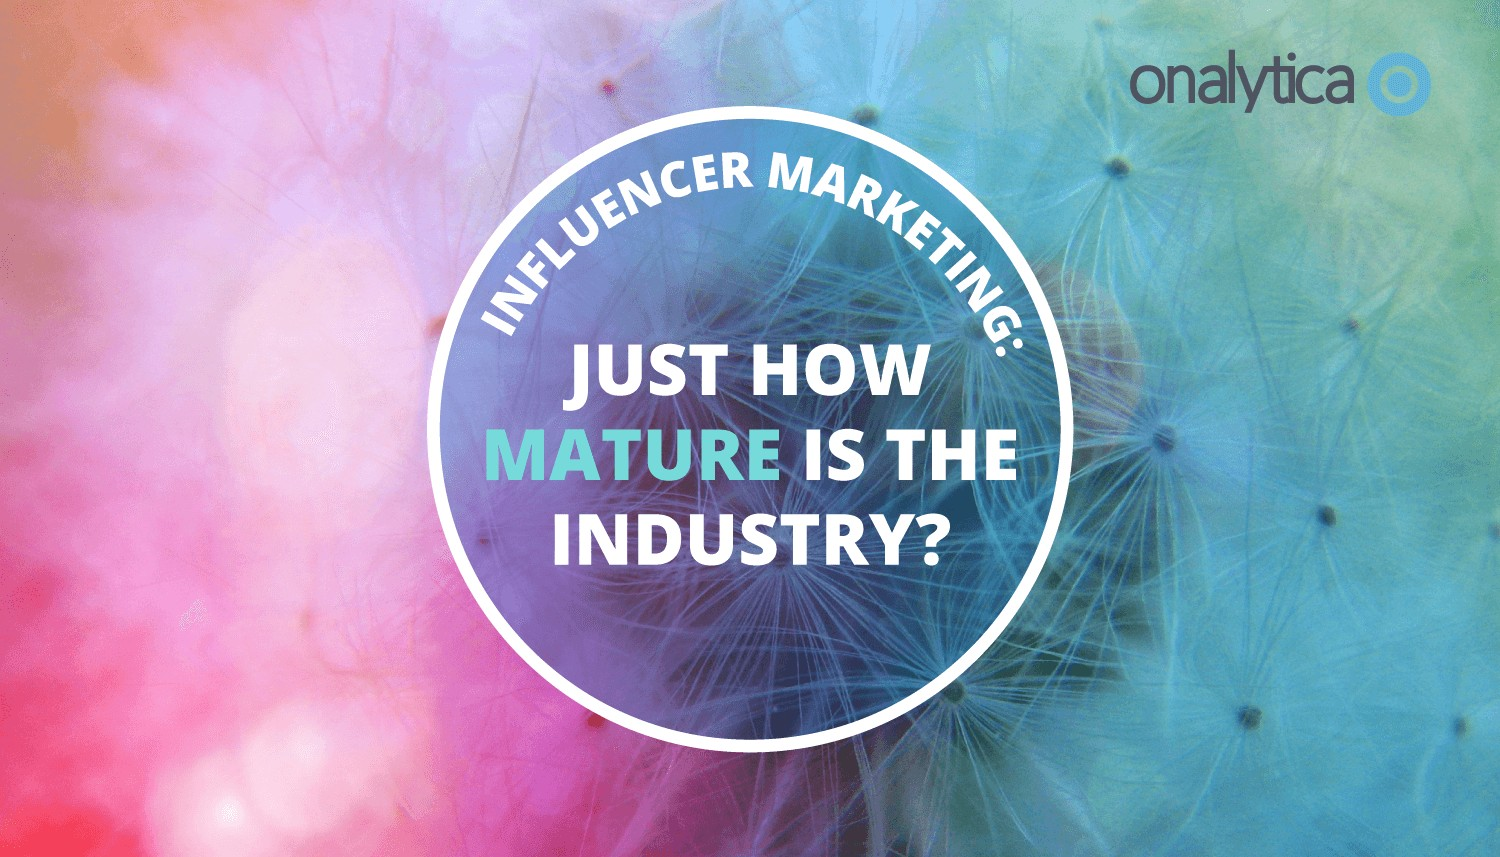 Just-how-Mature-is-the-Influencer-Marketing-Industry